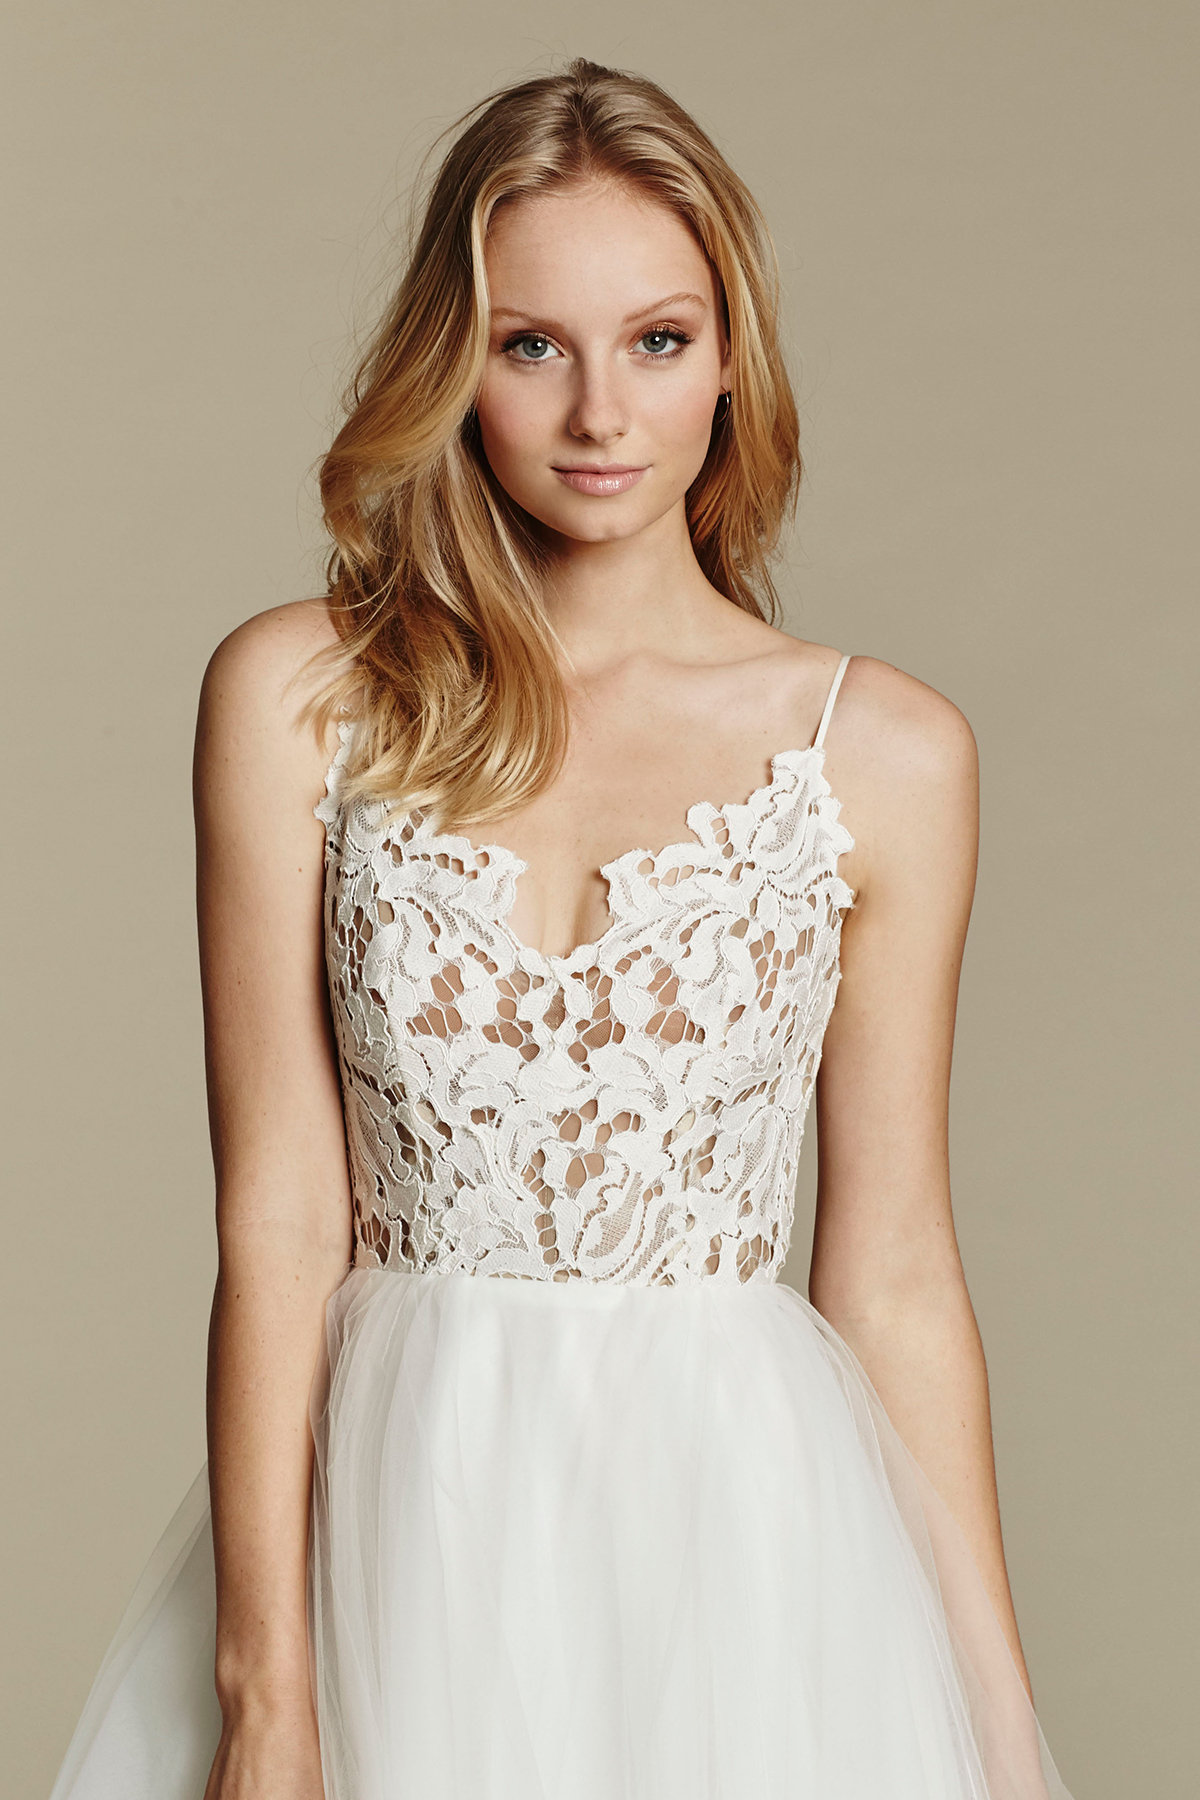 blush-hayley-paige-bridal-lace-tulle-ball-gown-scalloped-v-neck-strap-tiered-tulle-horsehair-trim-1600_x2.jpg